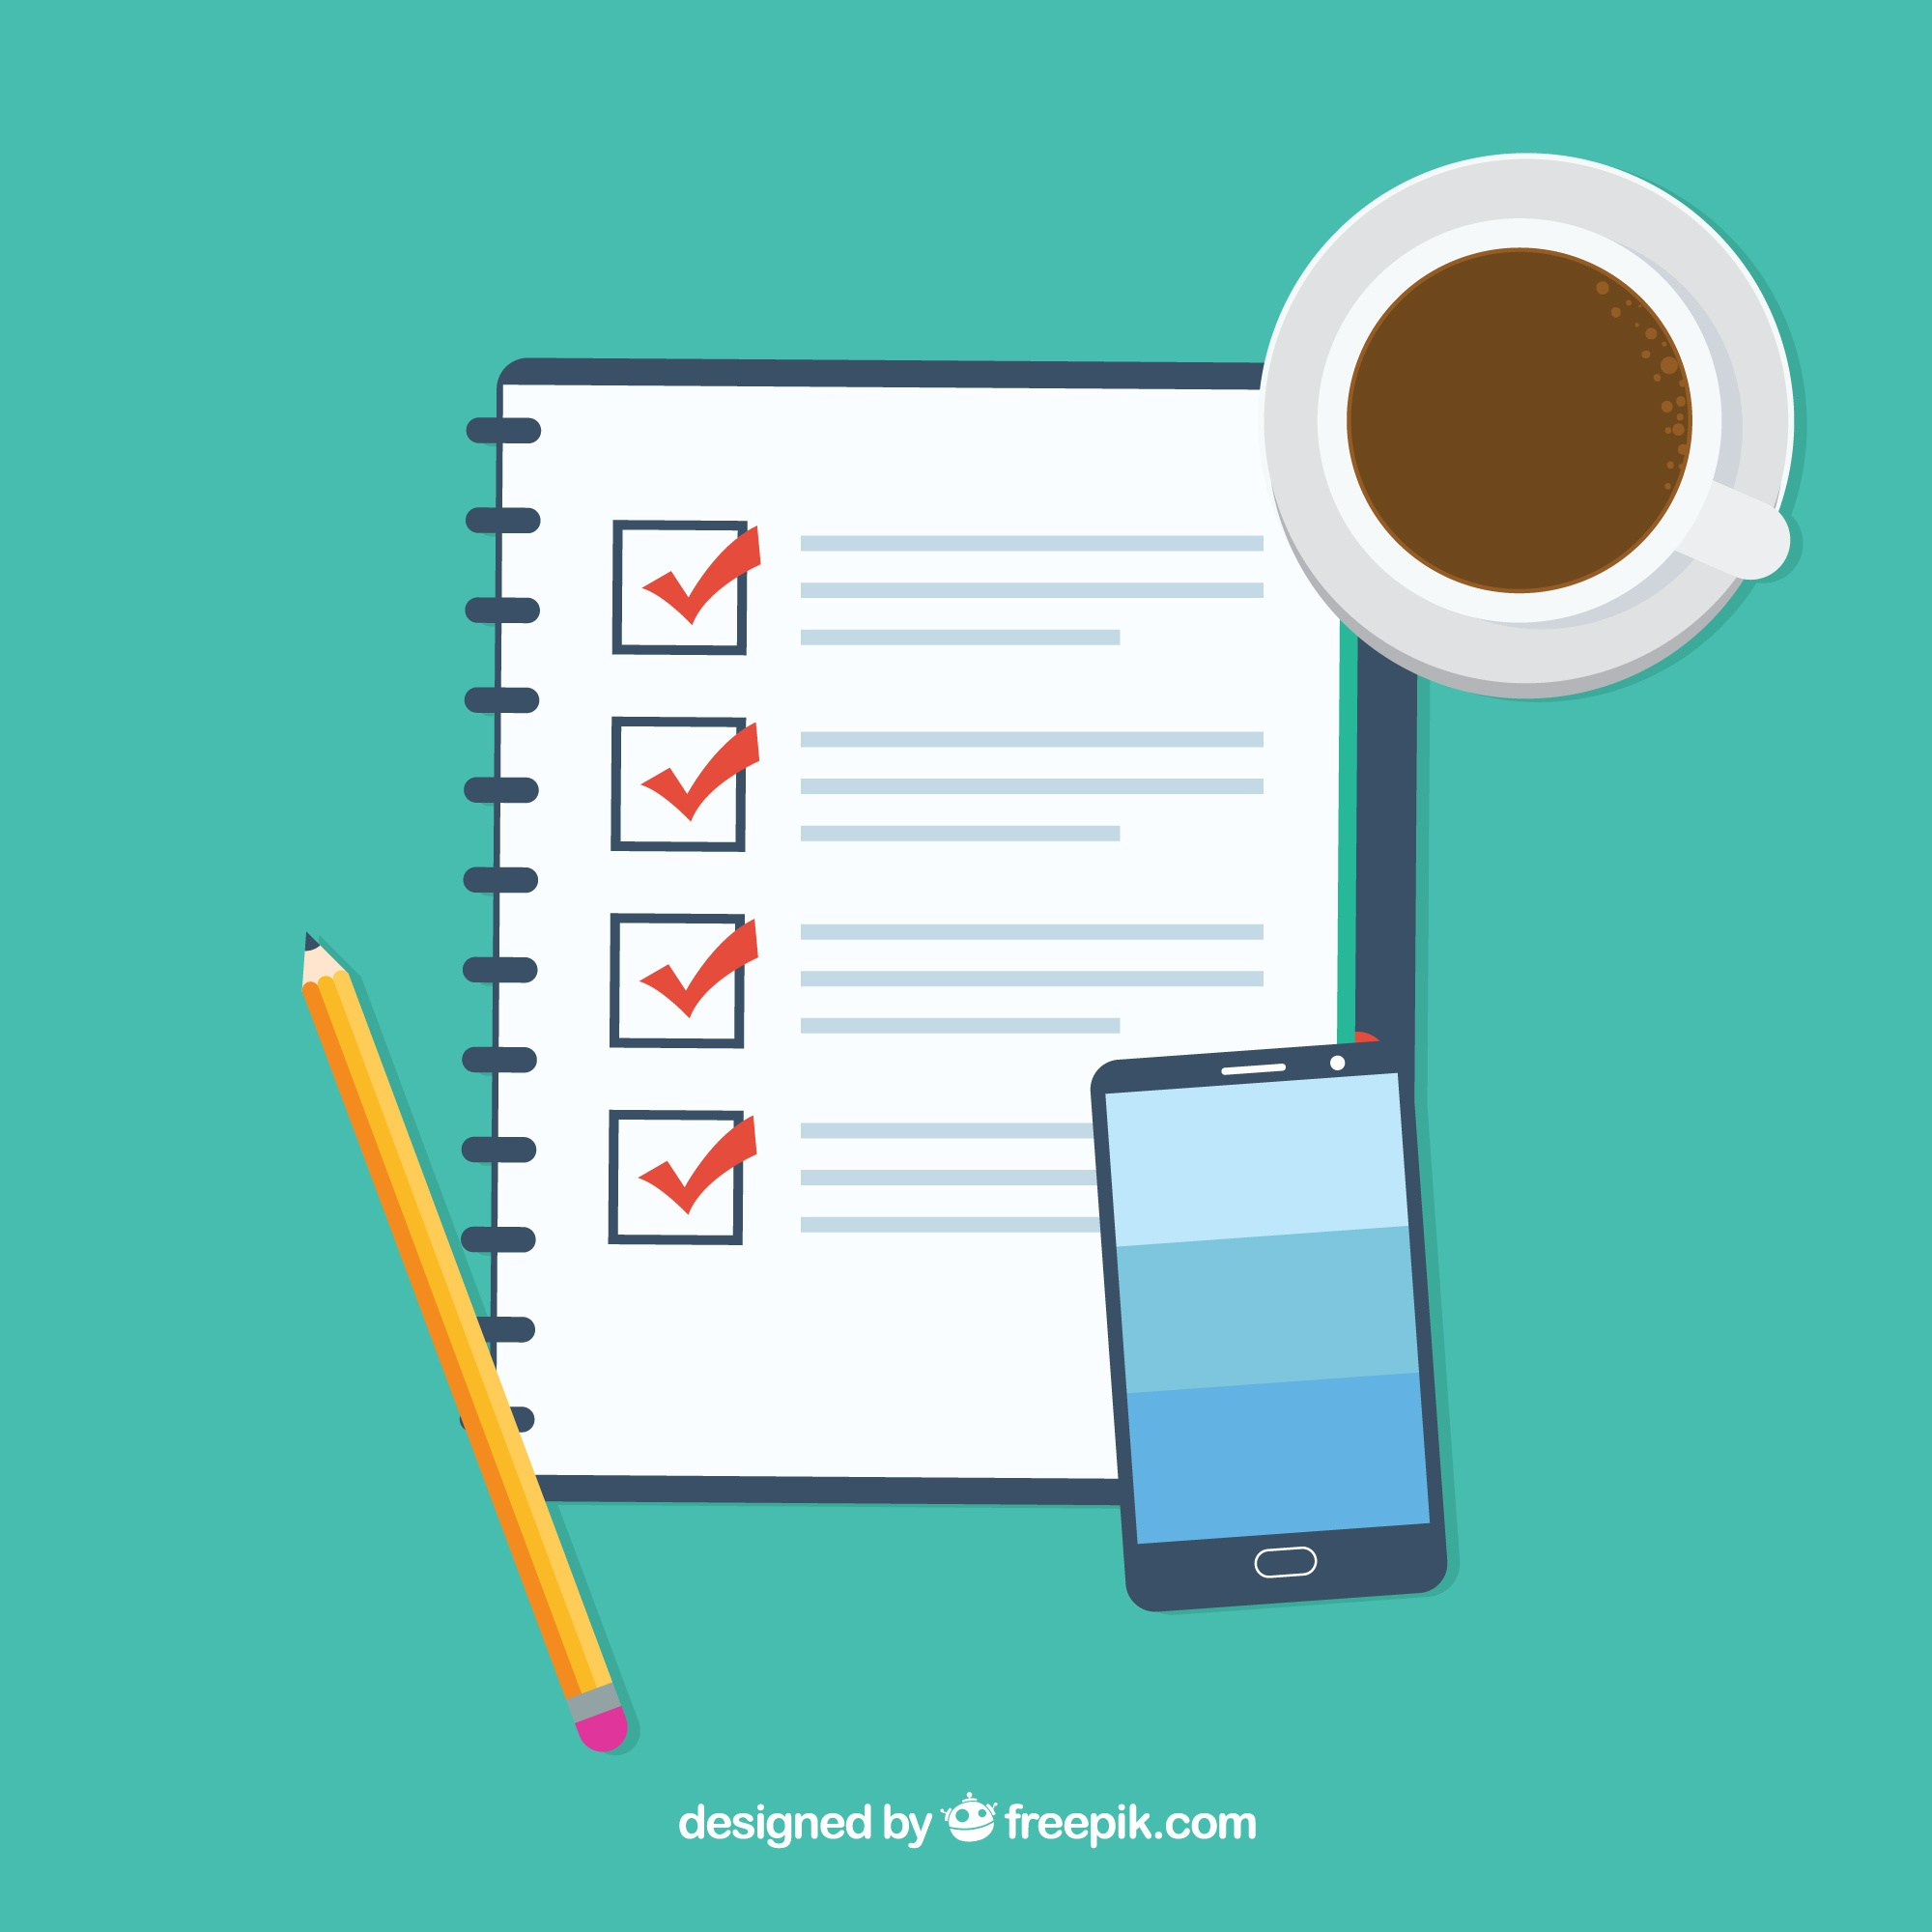 Flat background with checklist, coffee cup and mobile phone